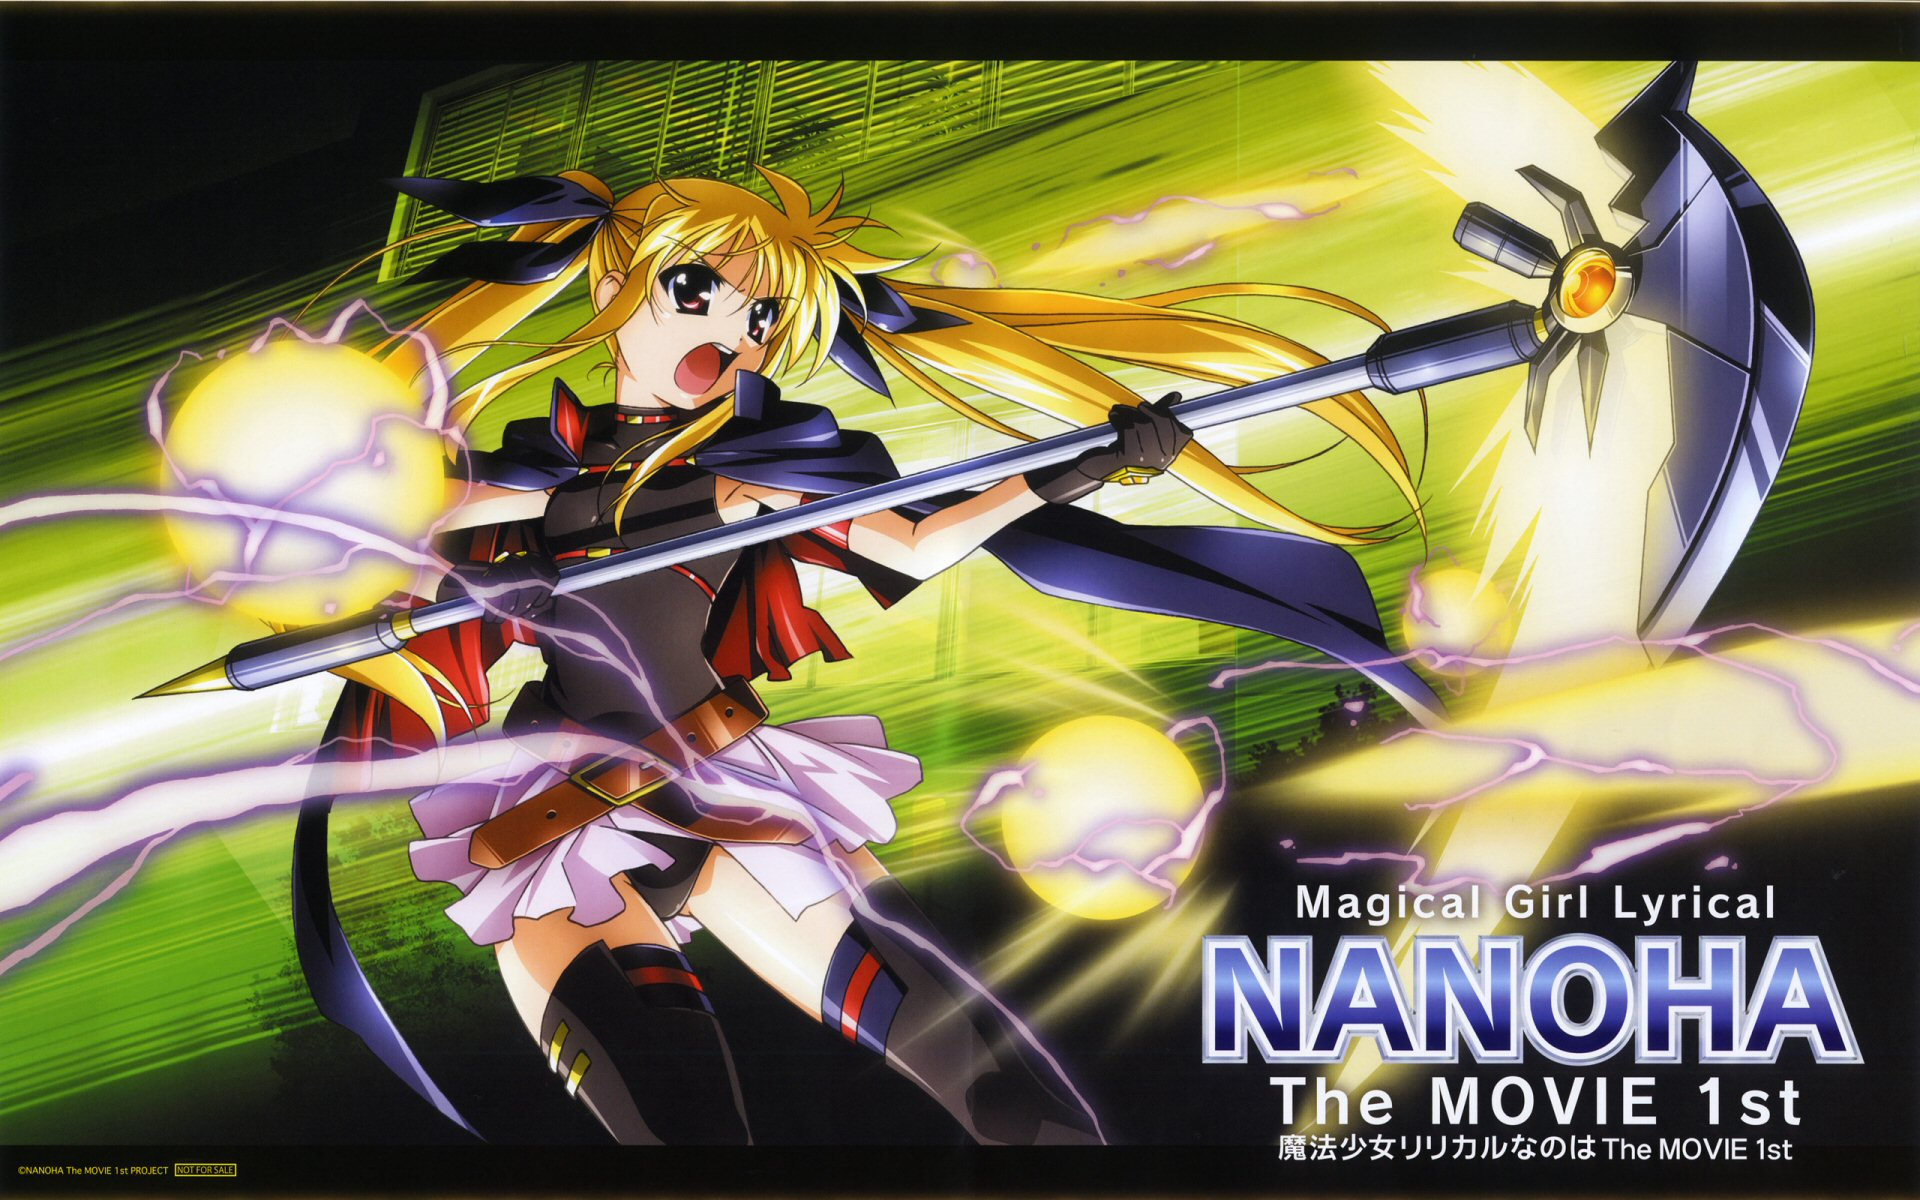 blonde_hair fate_testarossa mahou_shoujo_lyrical_nanoha mahou_shoujo_lyrical_nanoha_the_movie_1st twintails